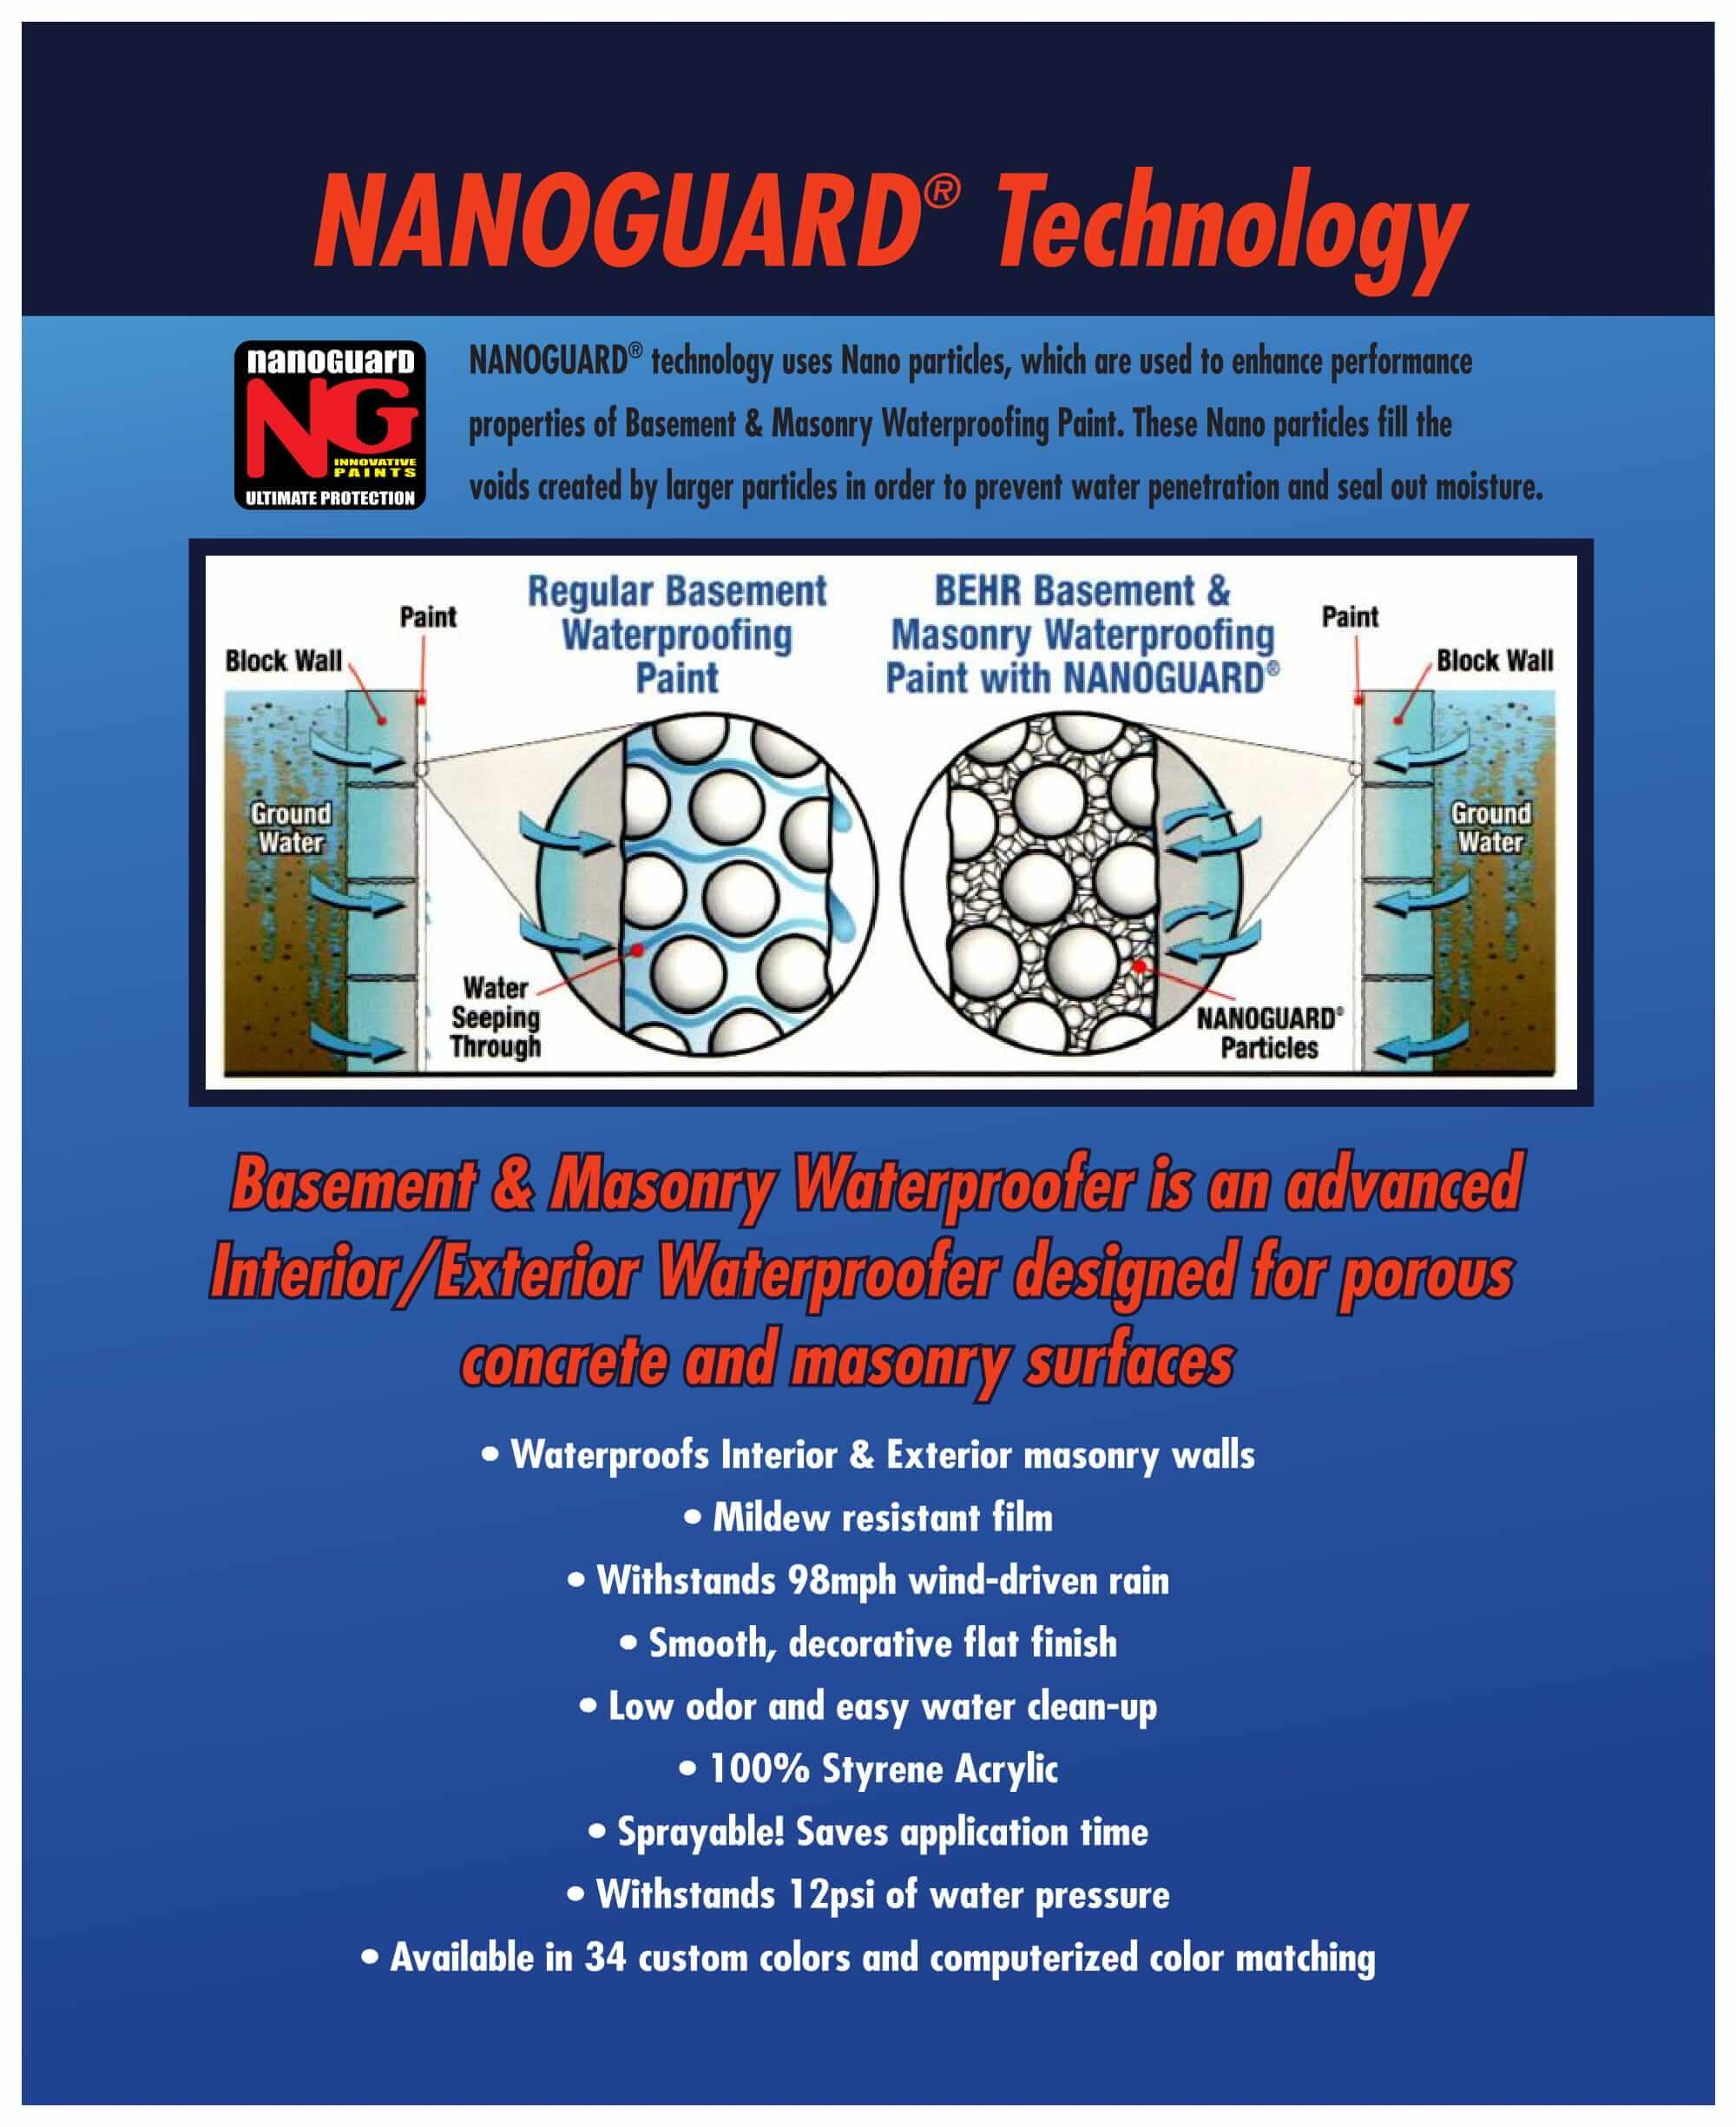 Nanoguard Technology Waterproofing